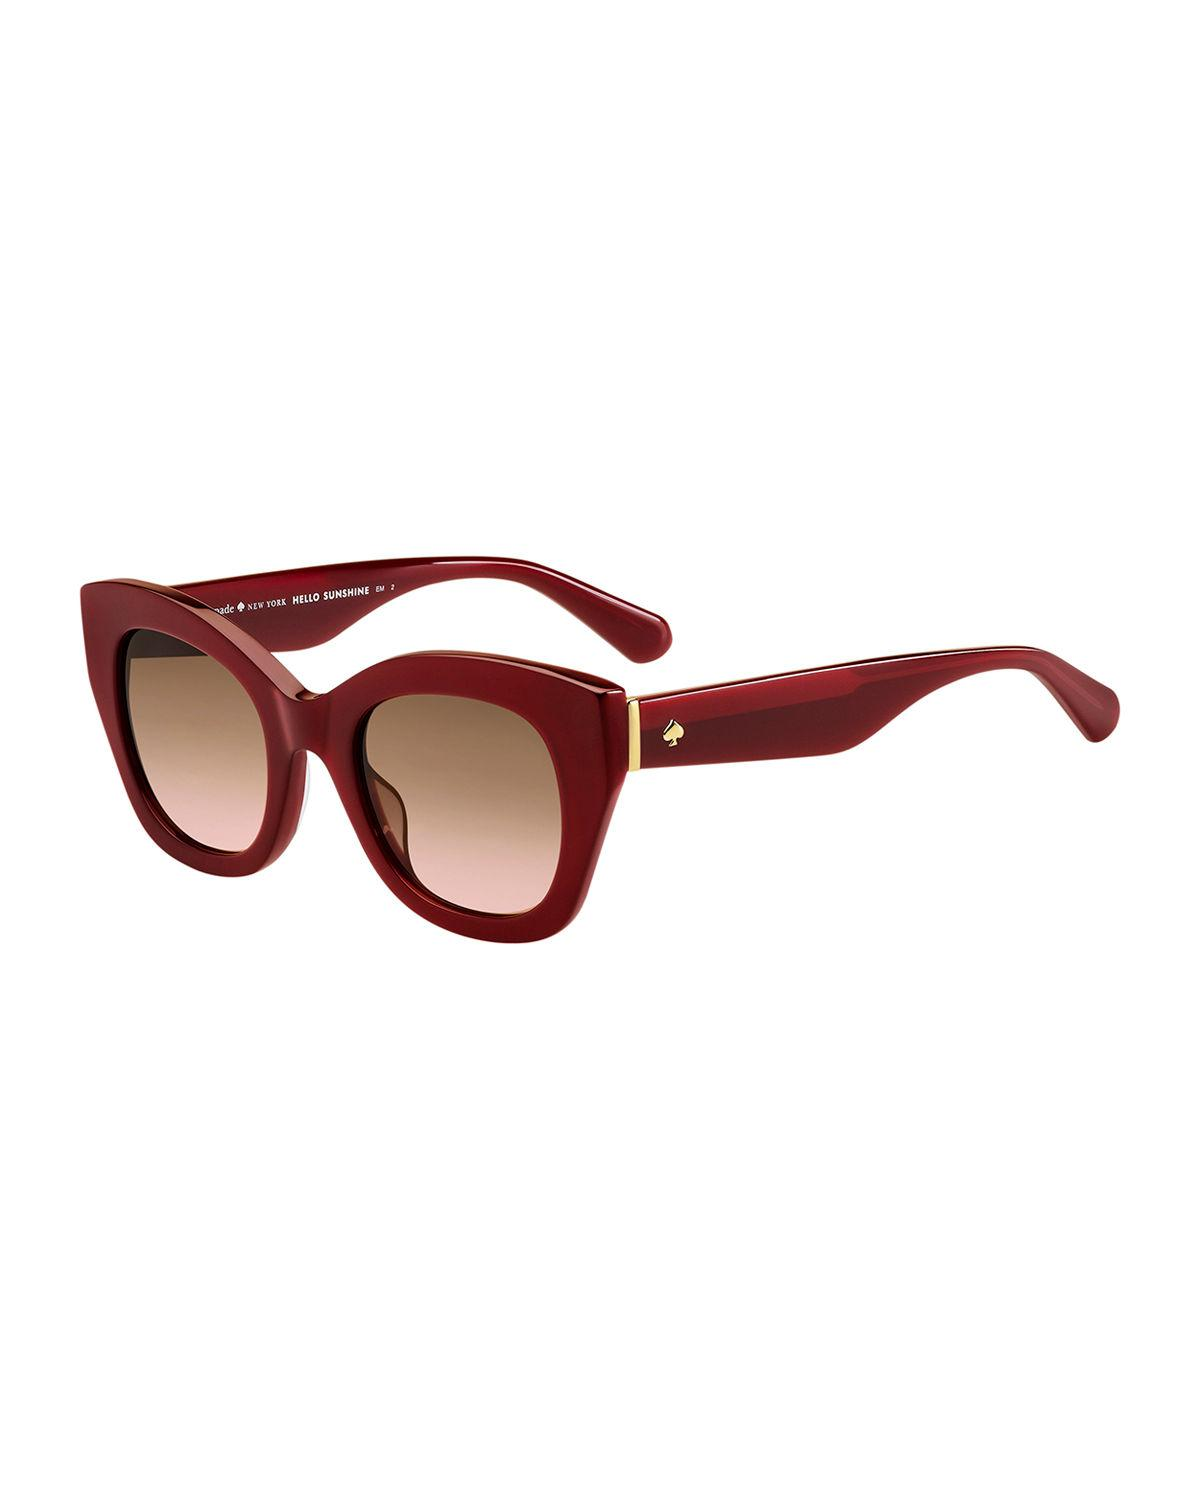 44822696ff Lyst - Kate Spade Acetate Cat-eye Sunglasses in Red